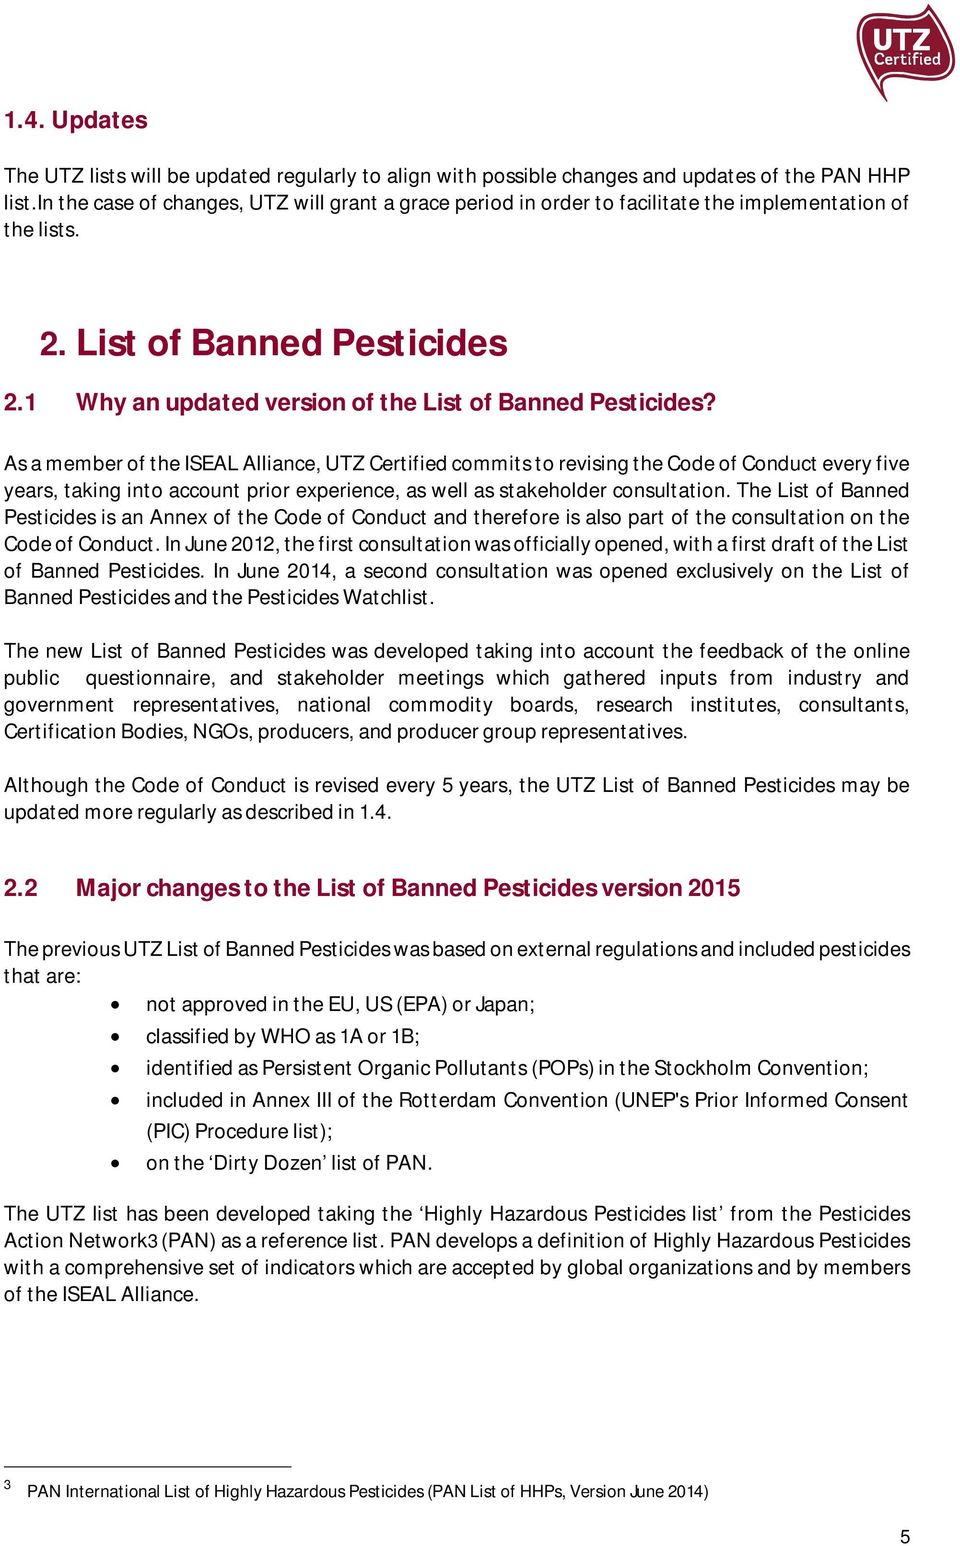 list of banned pesticides and pesticides watchlist version pdf as a member of the iseal alliance utz certified commits to revising the code of